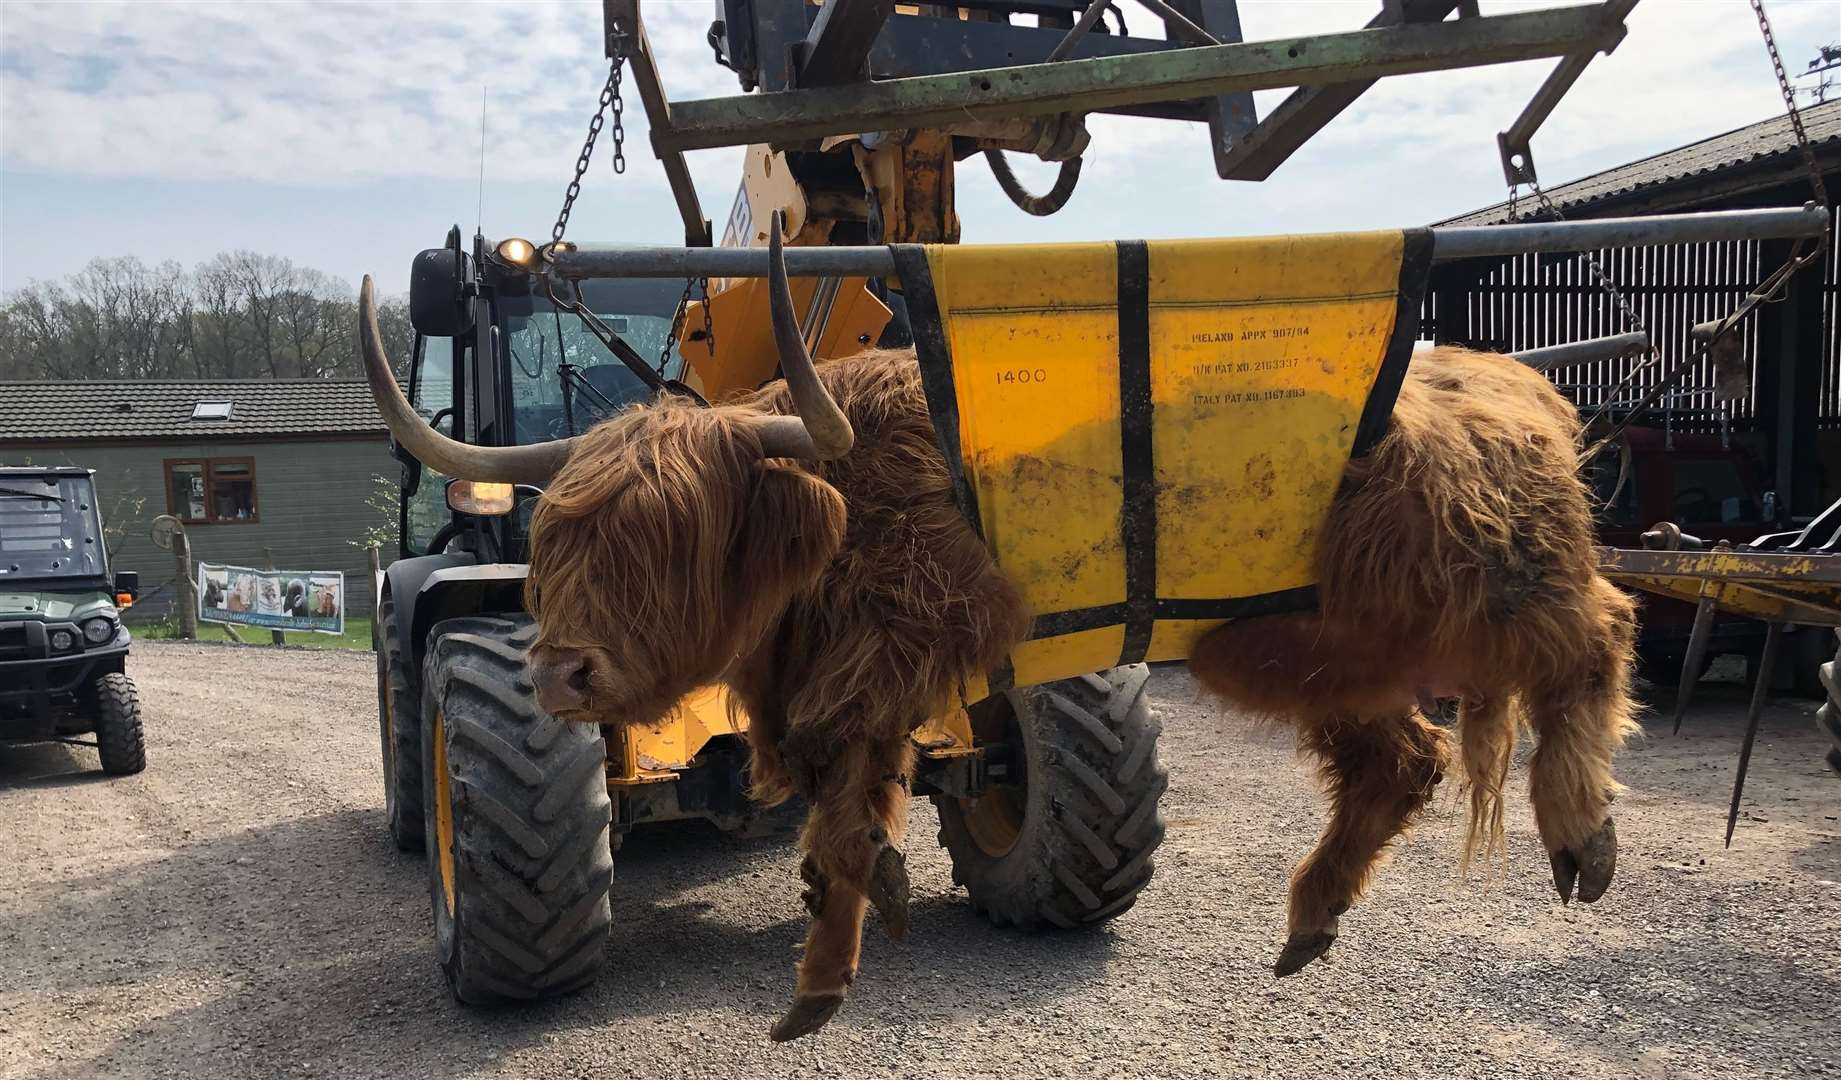 One of Mr Coles' Highland cattle had to be transported five miles to Roundoak farm to retrieve care before she died.